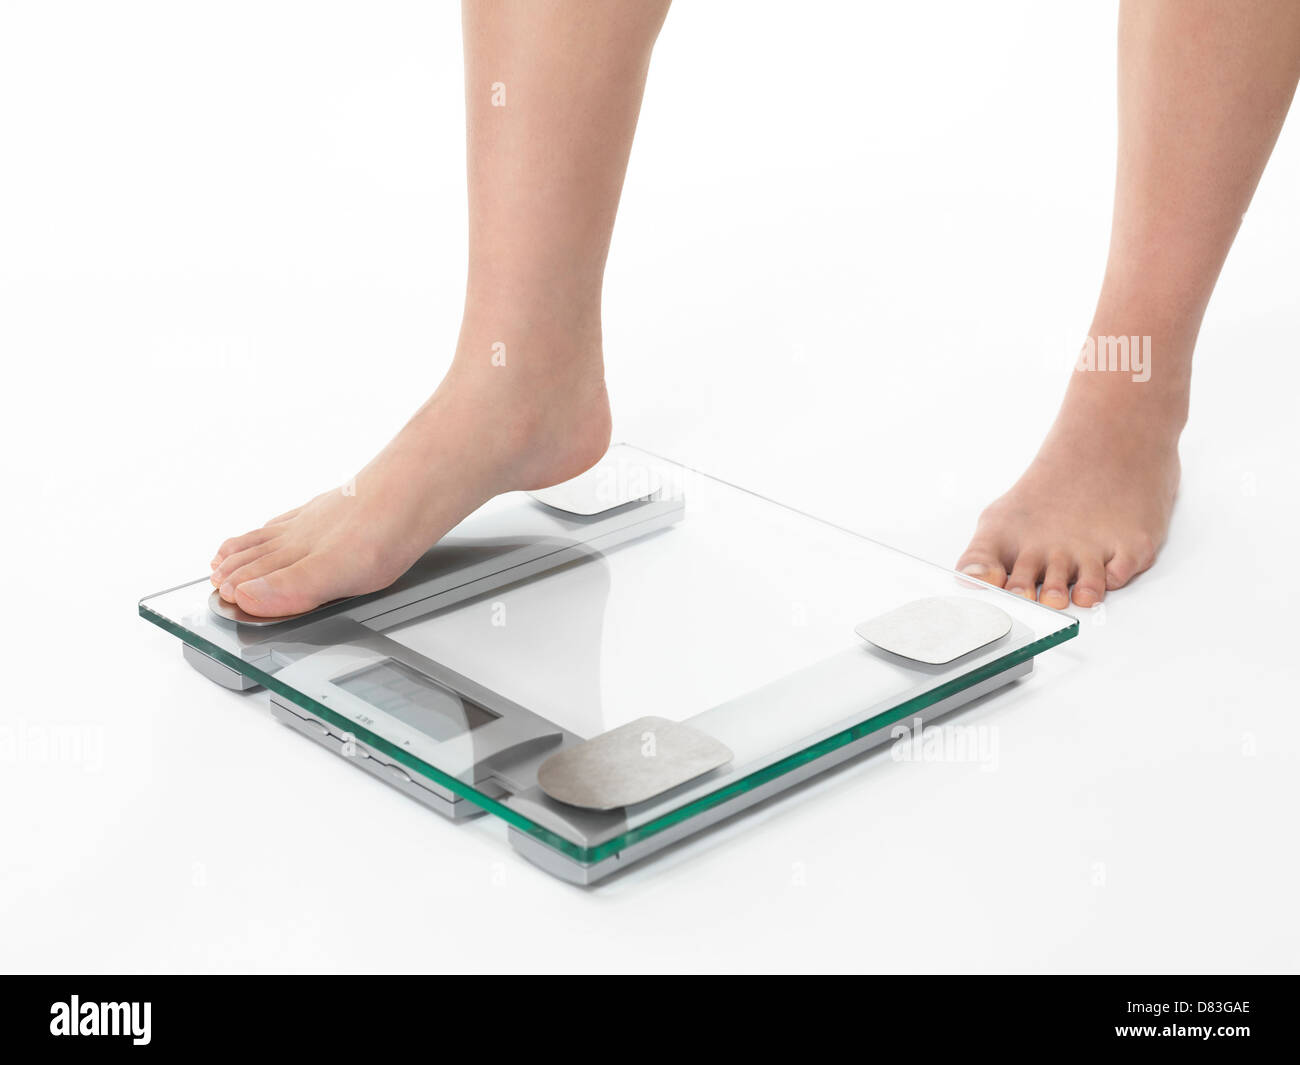 Closeup of woman legs stepping on weight scale. Isolated on white background - Stock Image